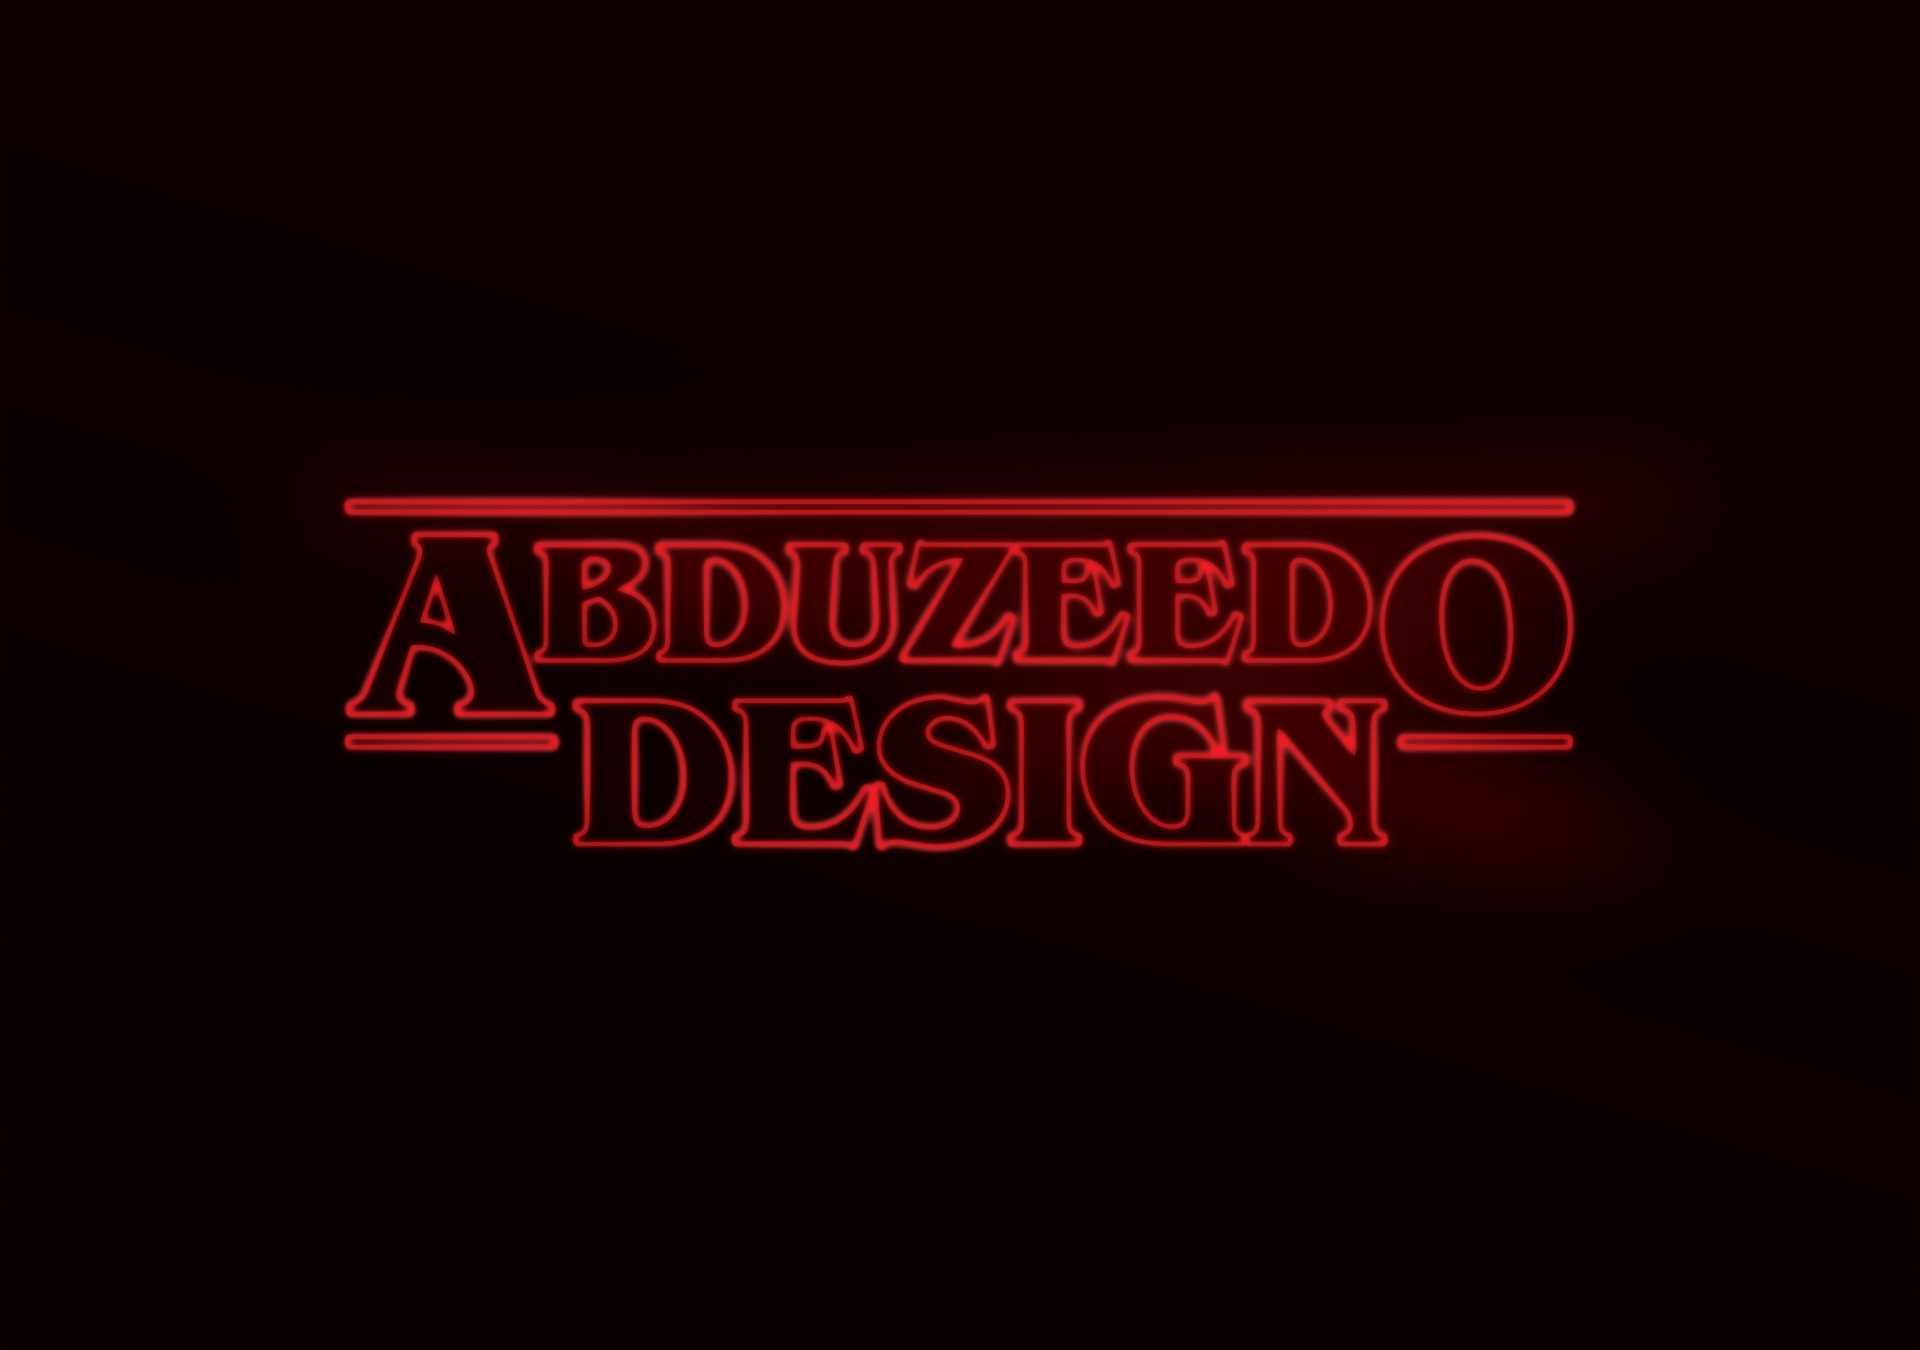 Stranger things logo photoshop tutorials tutorial stranger things logo tutorial photoshop baditri Gallery